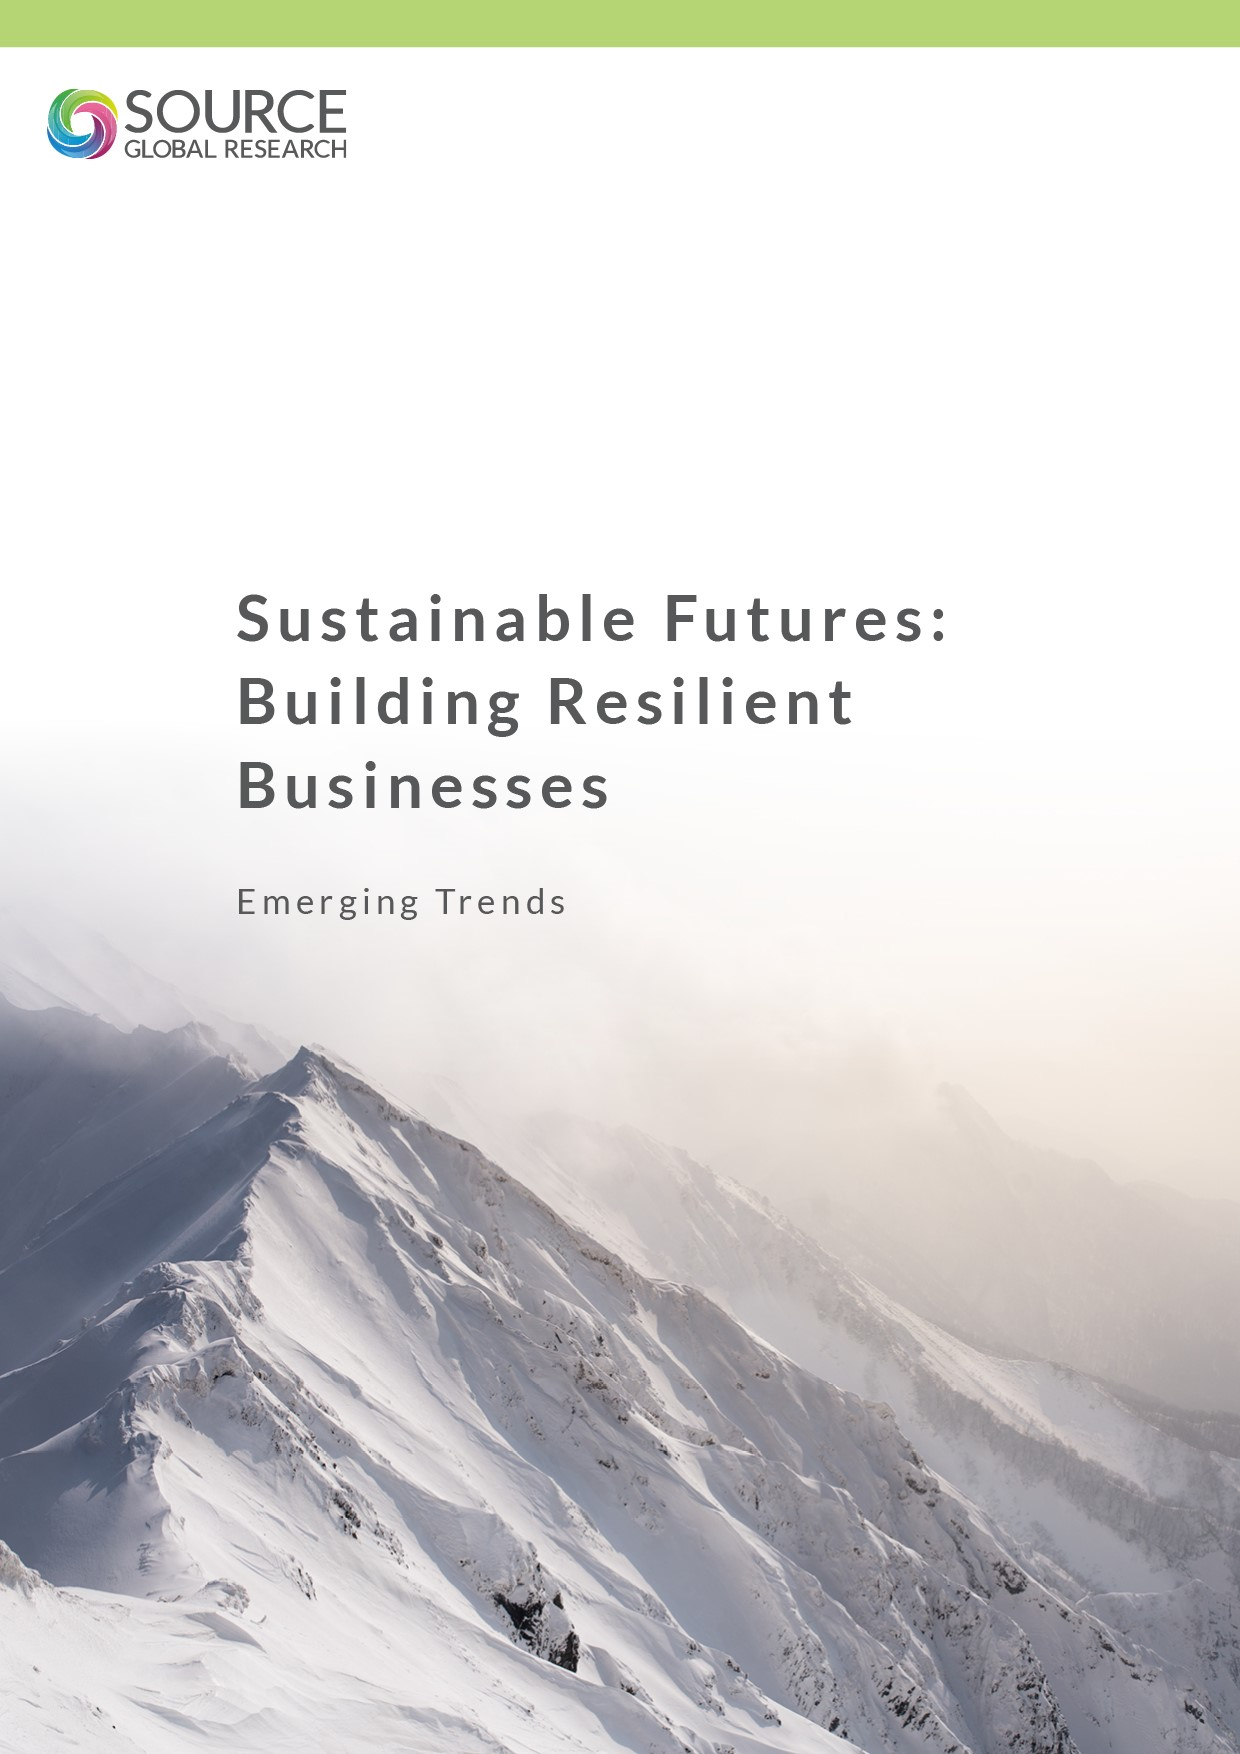 Sustainable Futures: Building Resilient Businesses